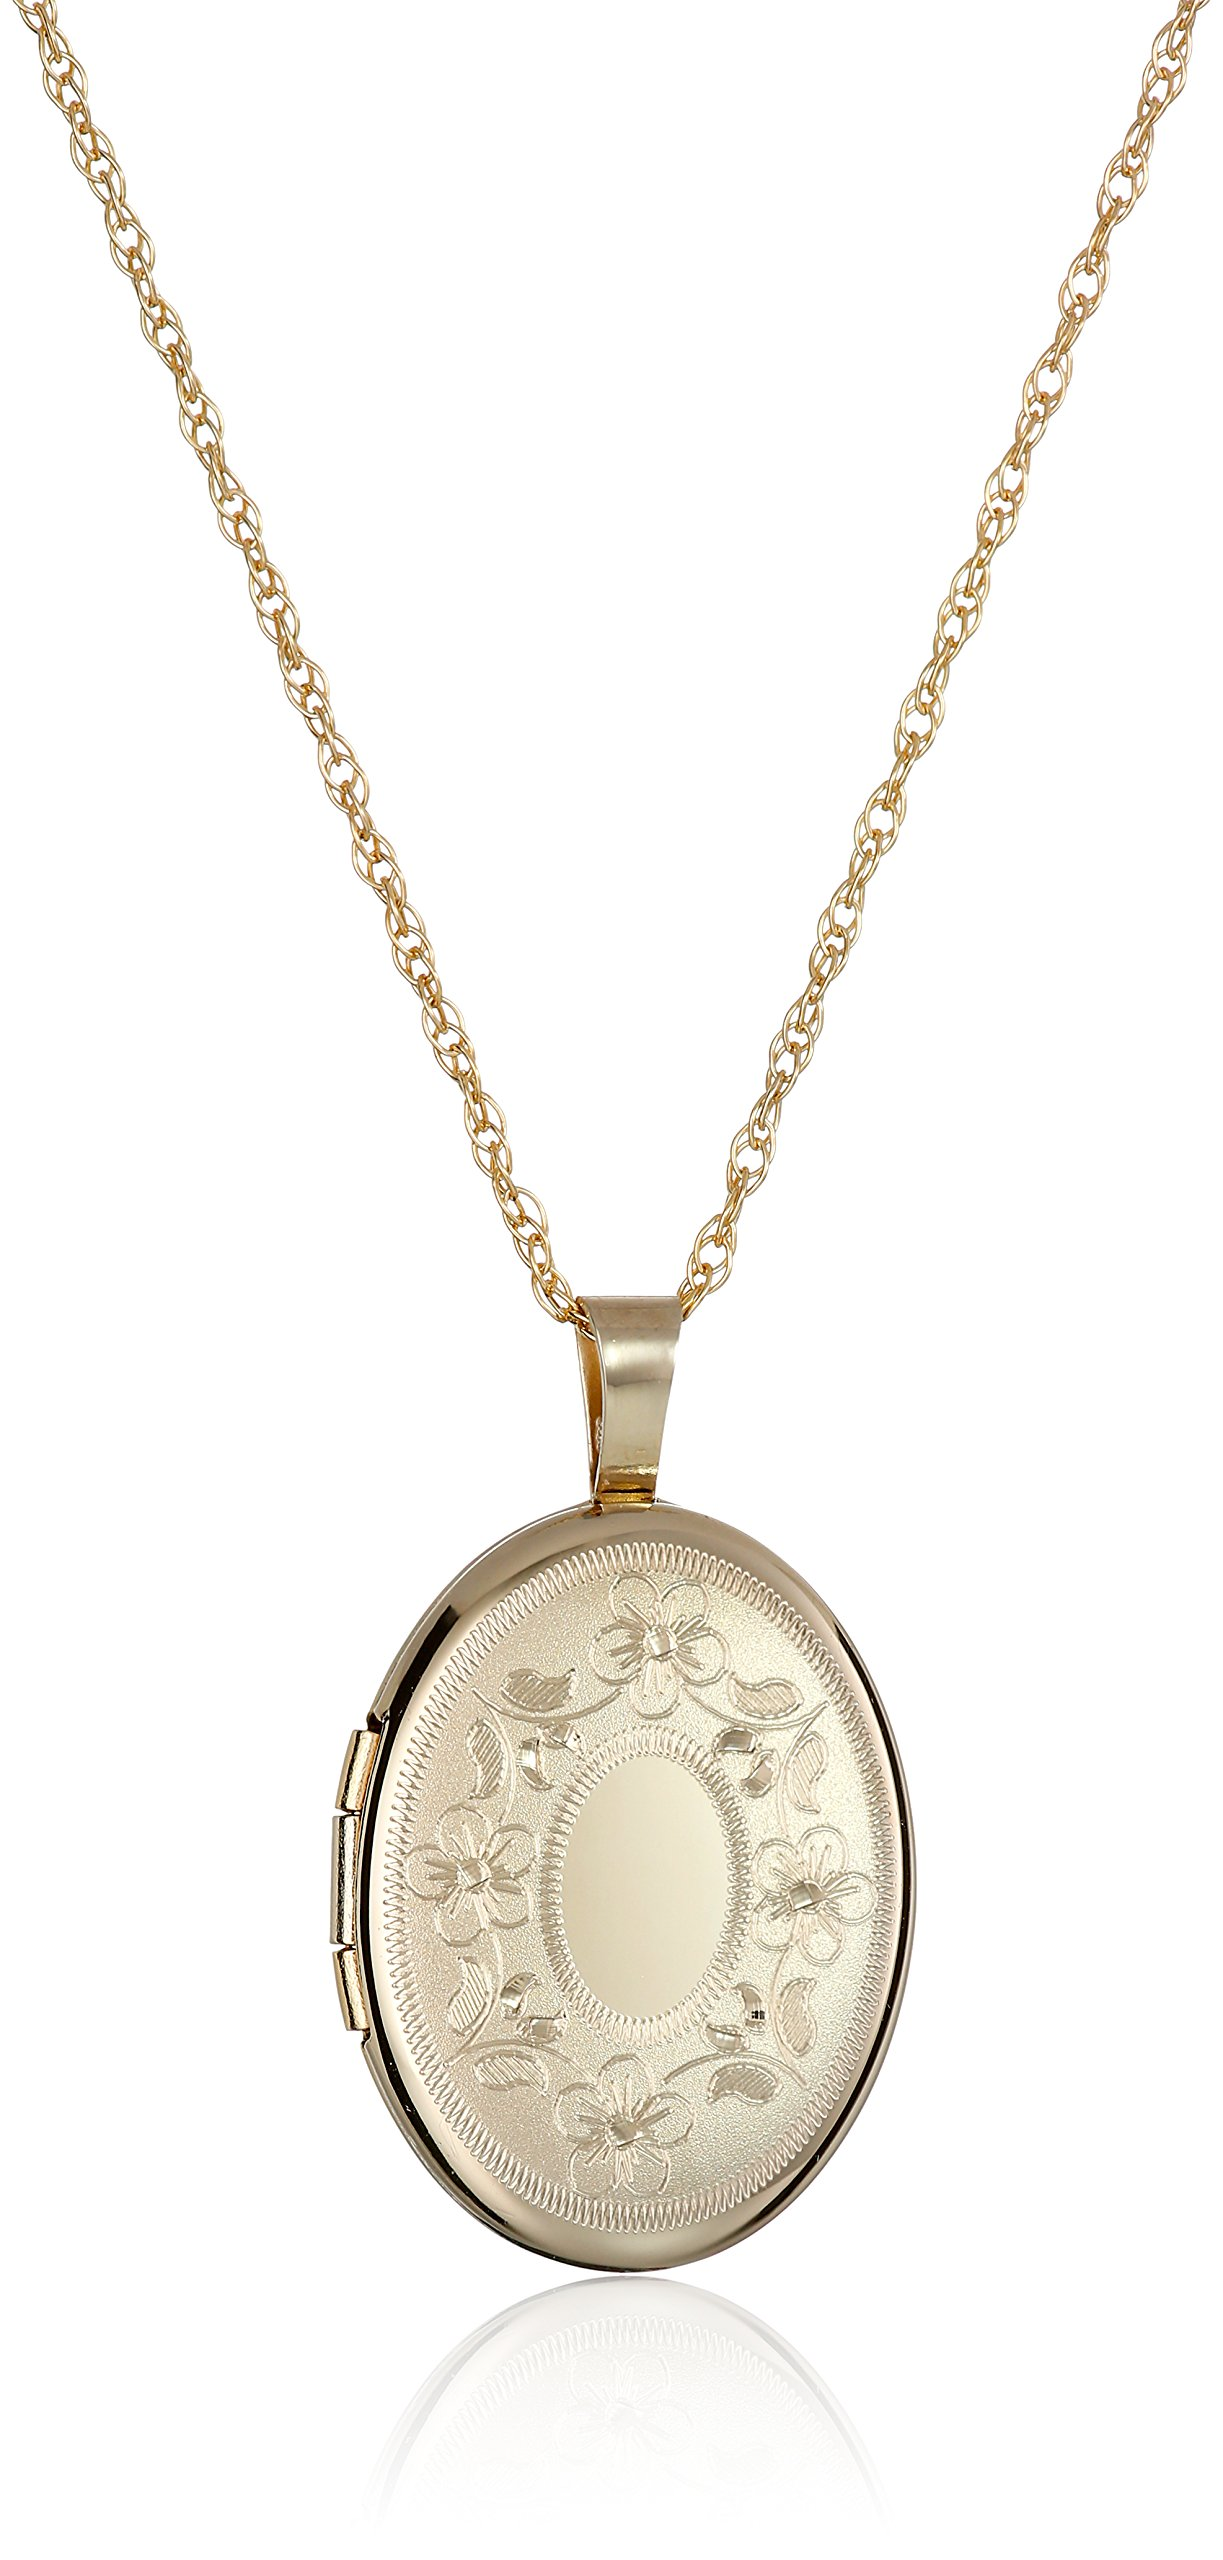 14k Gold-Filled with Floral Design and Center Signet Oval Hand Engraved Locket Necklace, 18'' by Amazon Collection